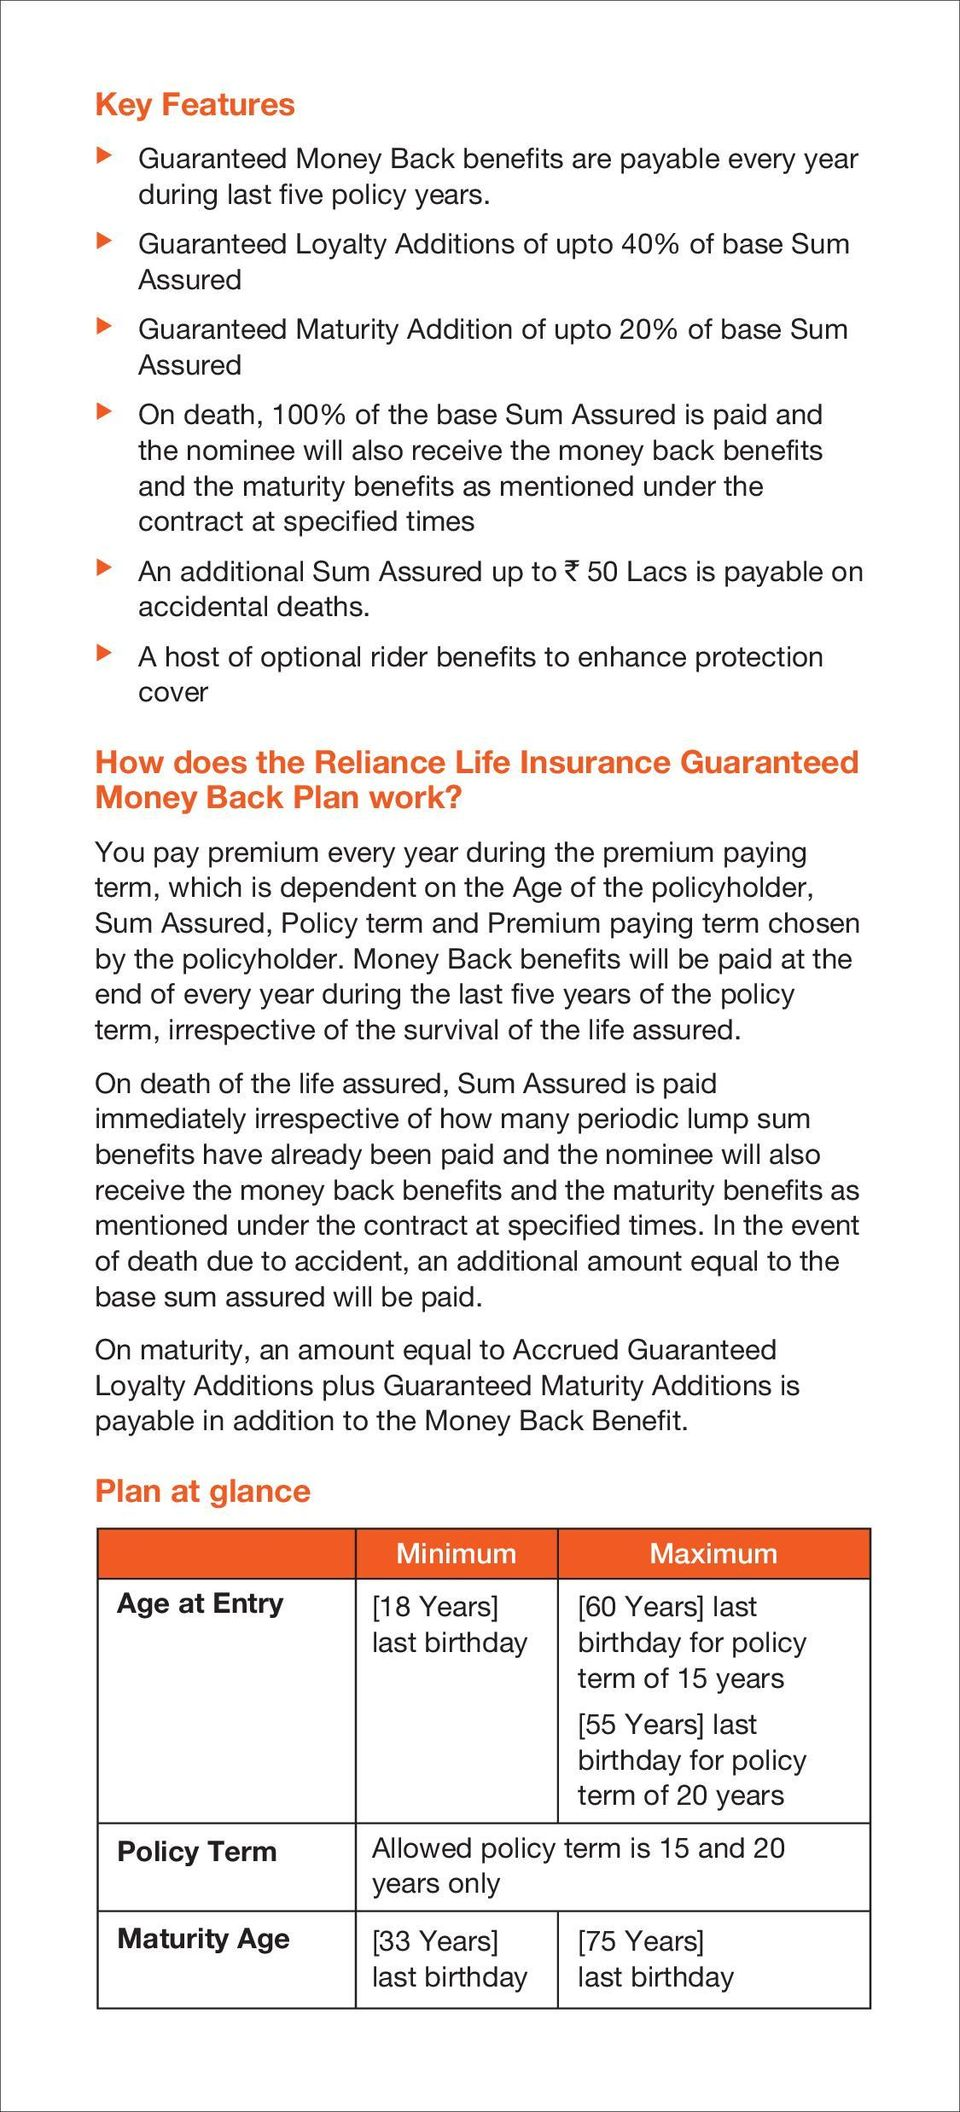 receive the money back benefits and the maturity benefits as mentioned under the contract at specified times An additional Sum Assured up to ` 50 Lacs is payable on accidental deaths.